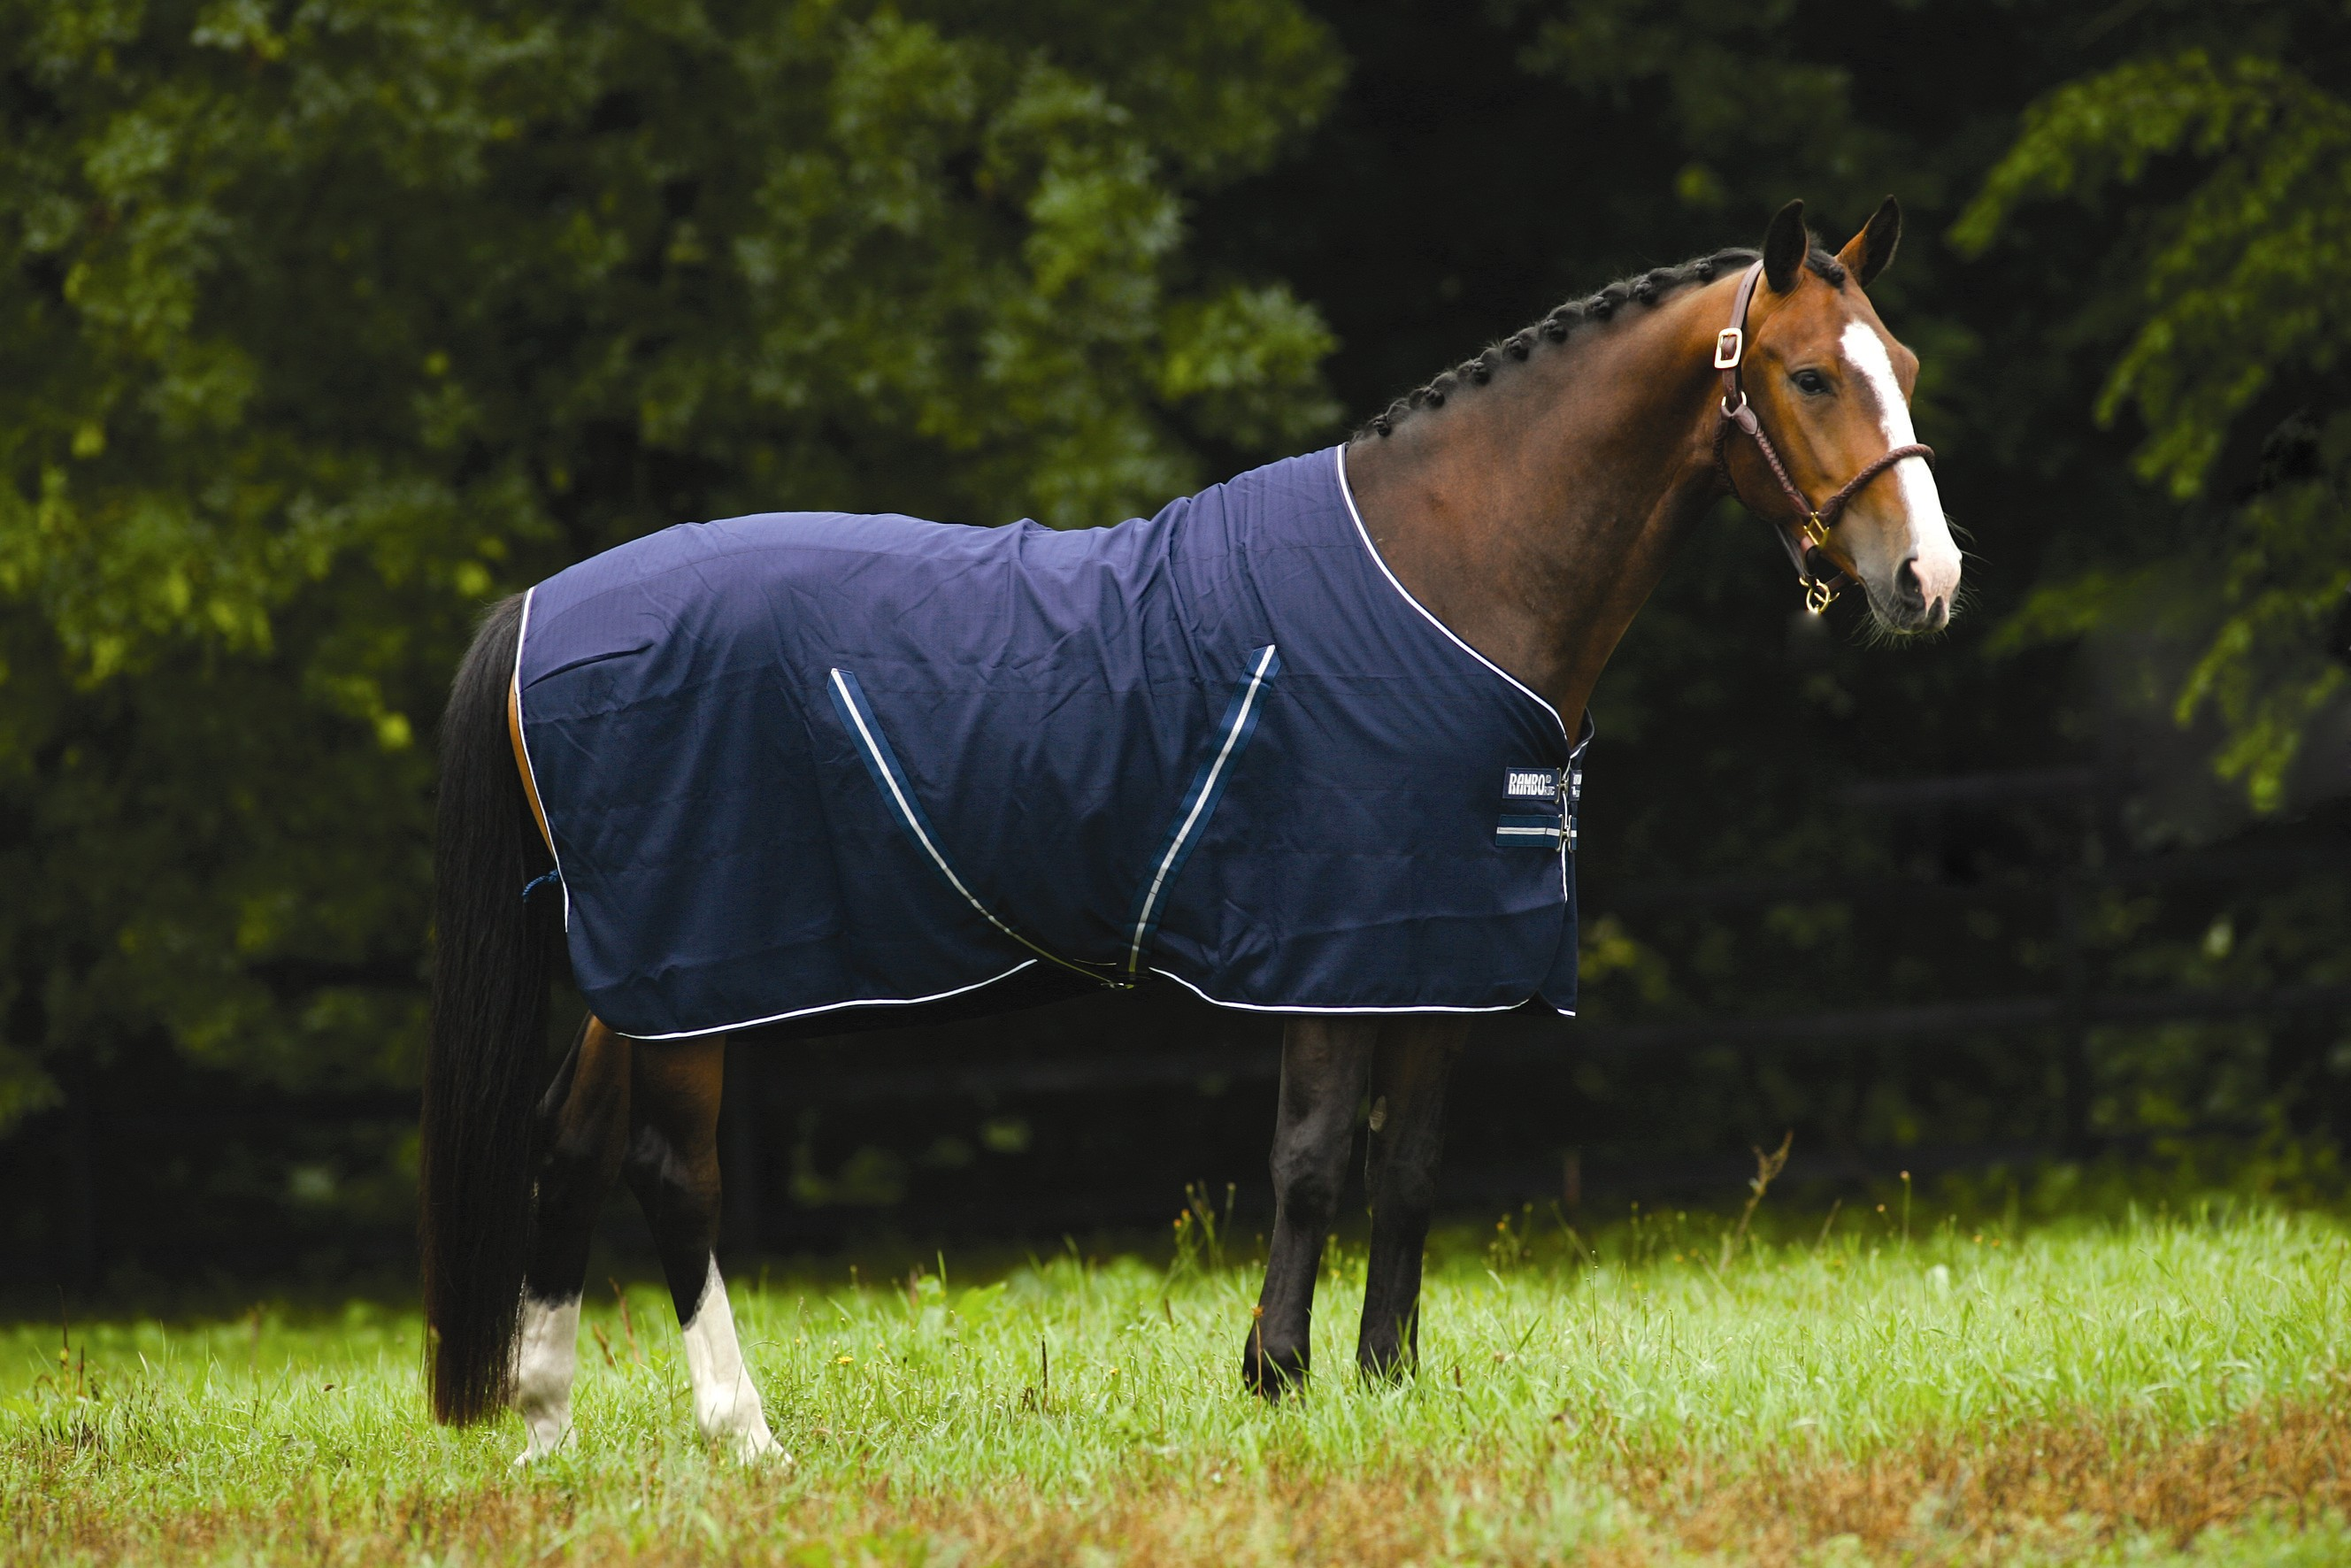 Horseware Rambo Summer Sheet/Travel Rug Clearance